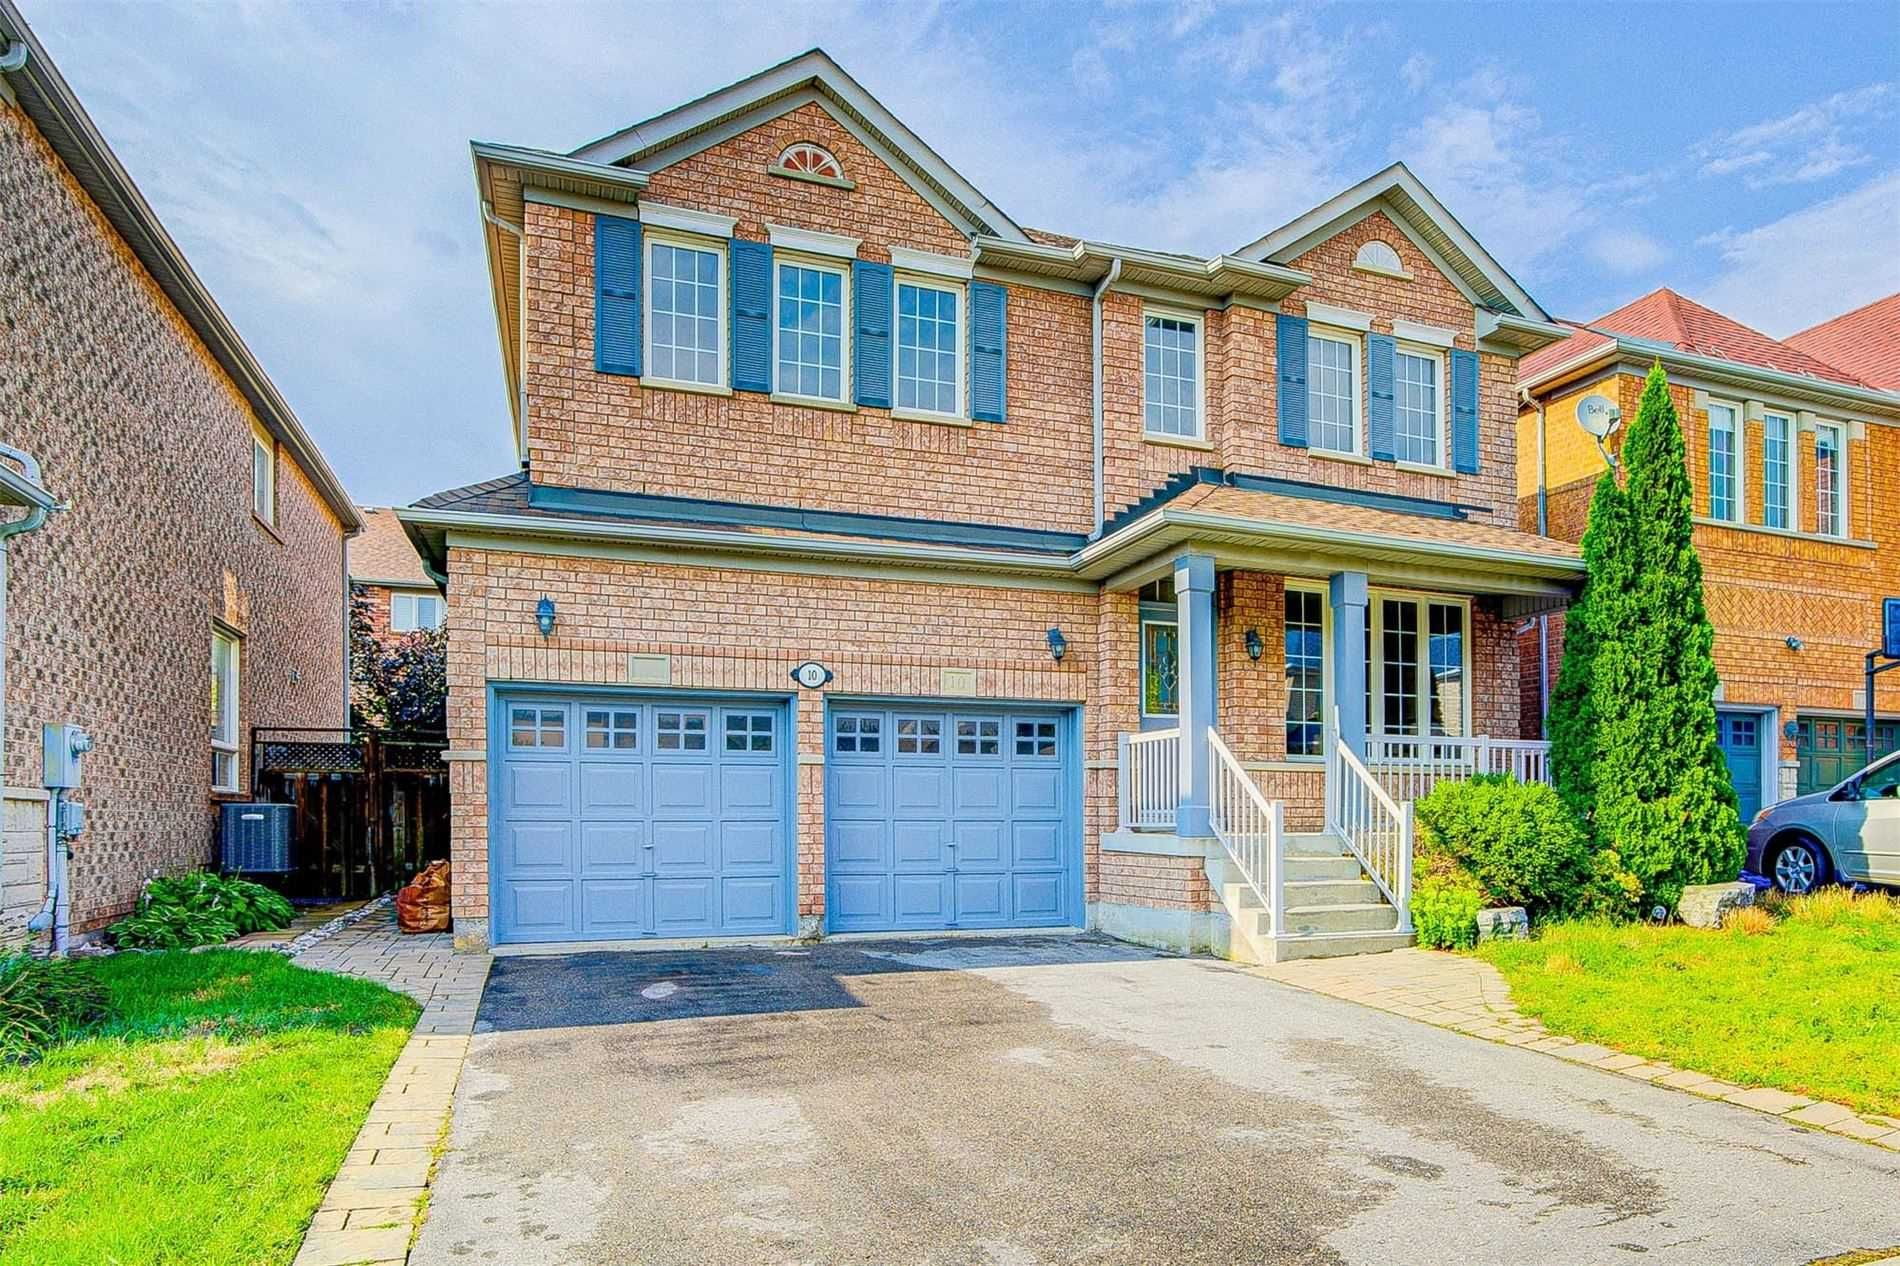 Main Photo: 10 Monkhouse Road in Markham: Wismer House (2-Storey) for sale : MLS®# N5356306